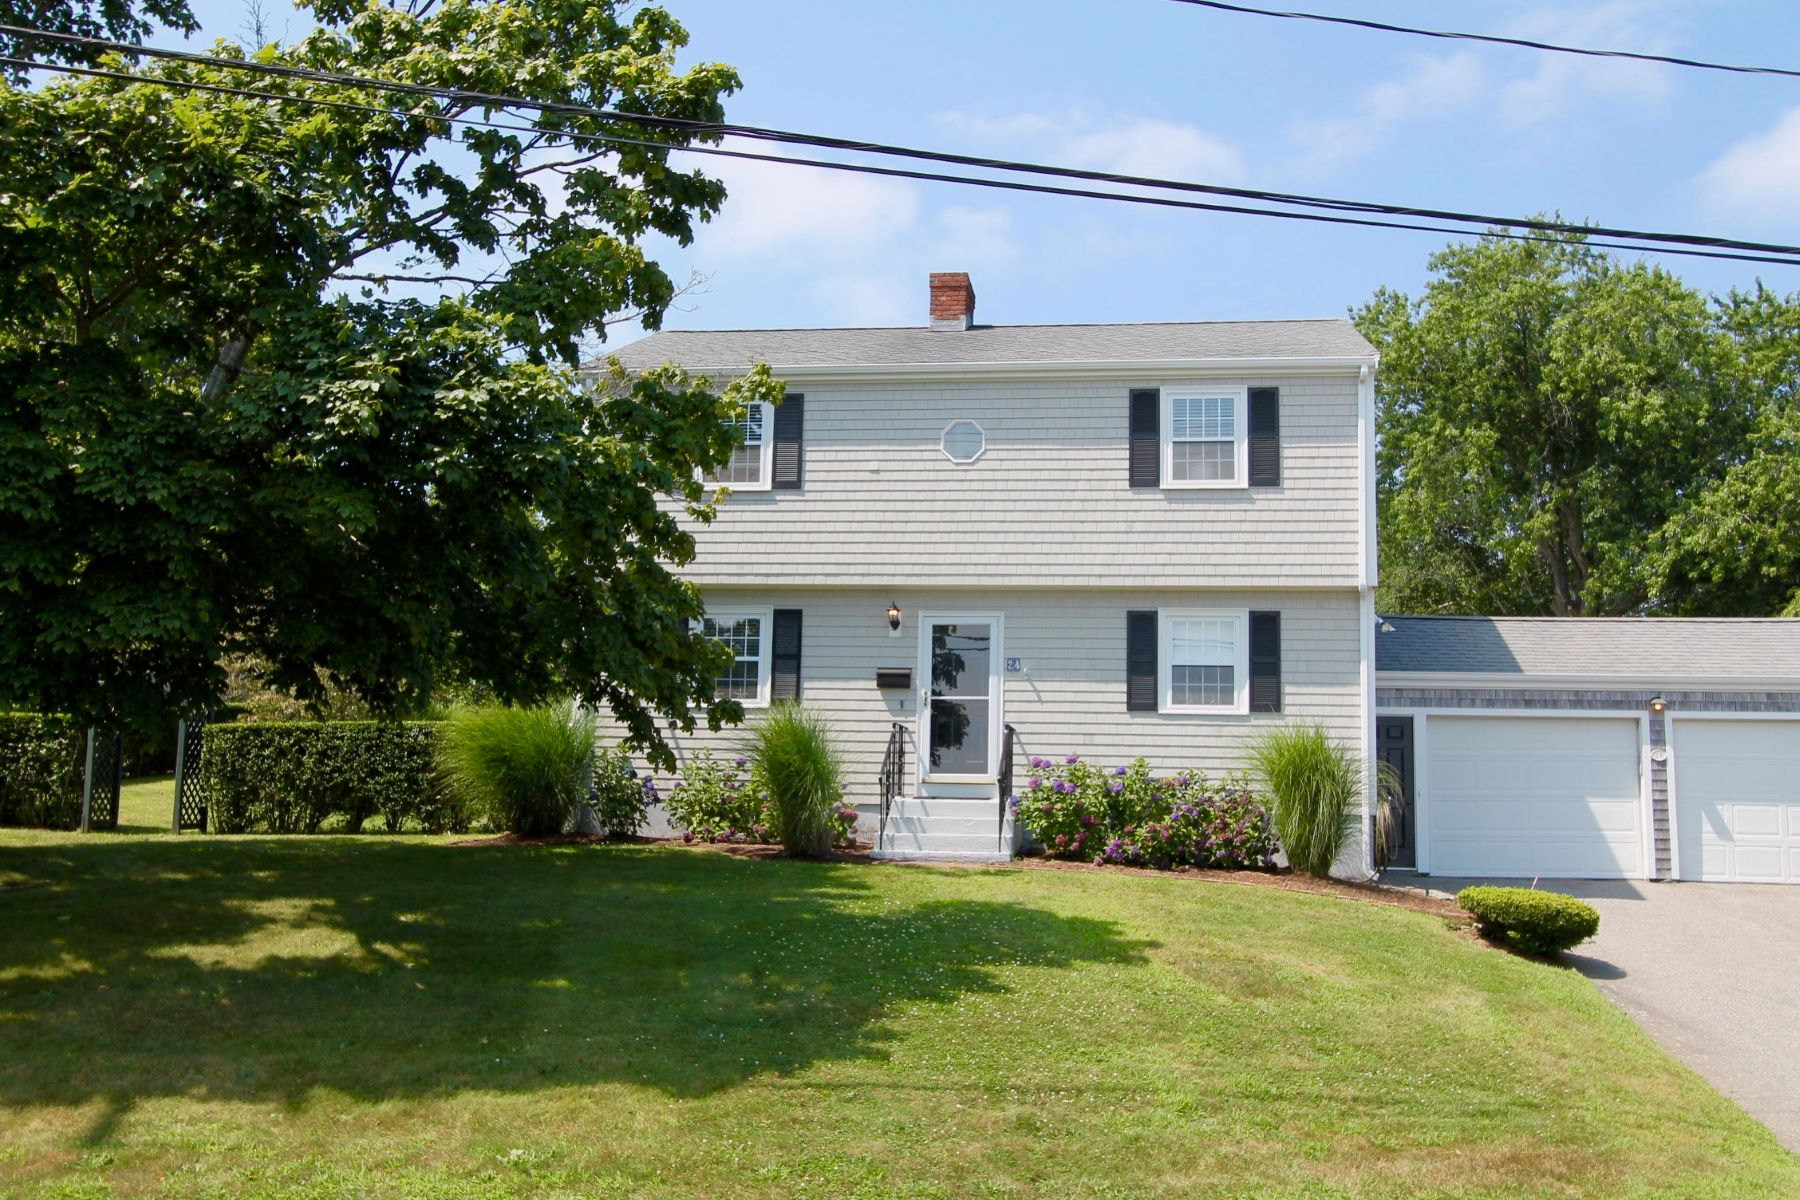 Single Family Homes for Sale at Mid-Century Colonial 24 High Street Middletown, Rhode Island 02842 United States